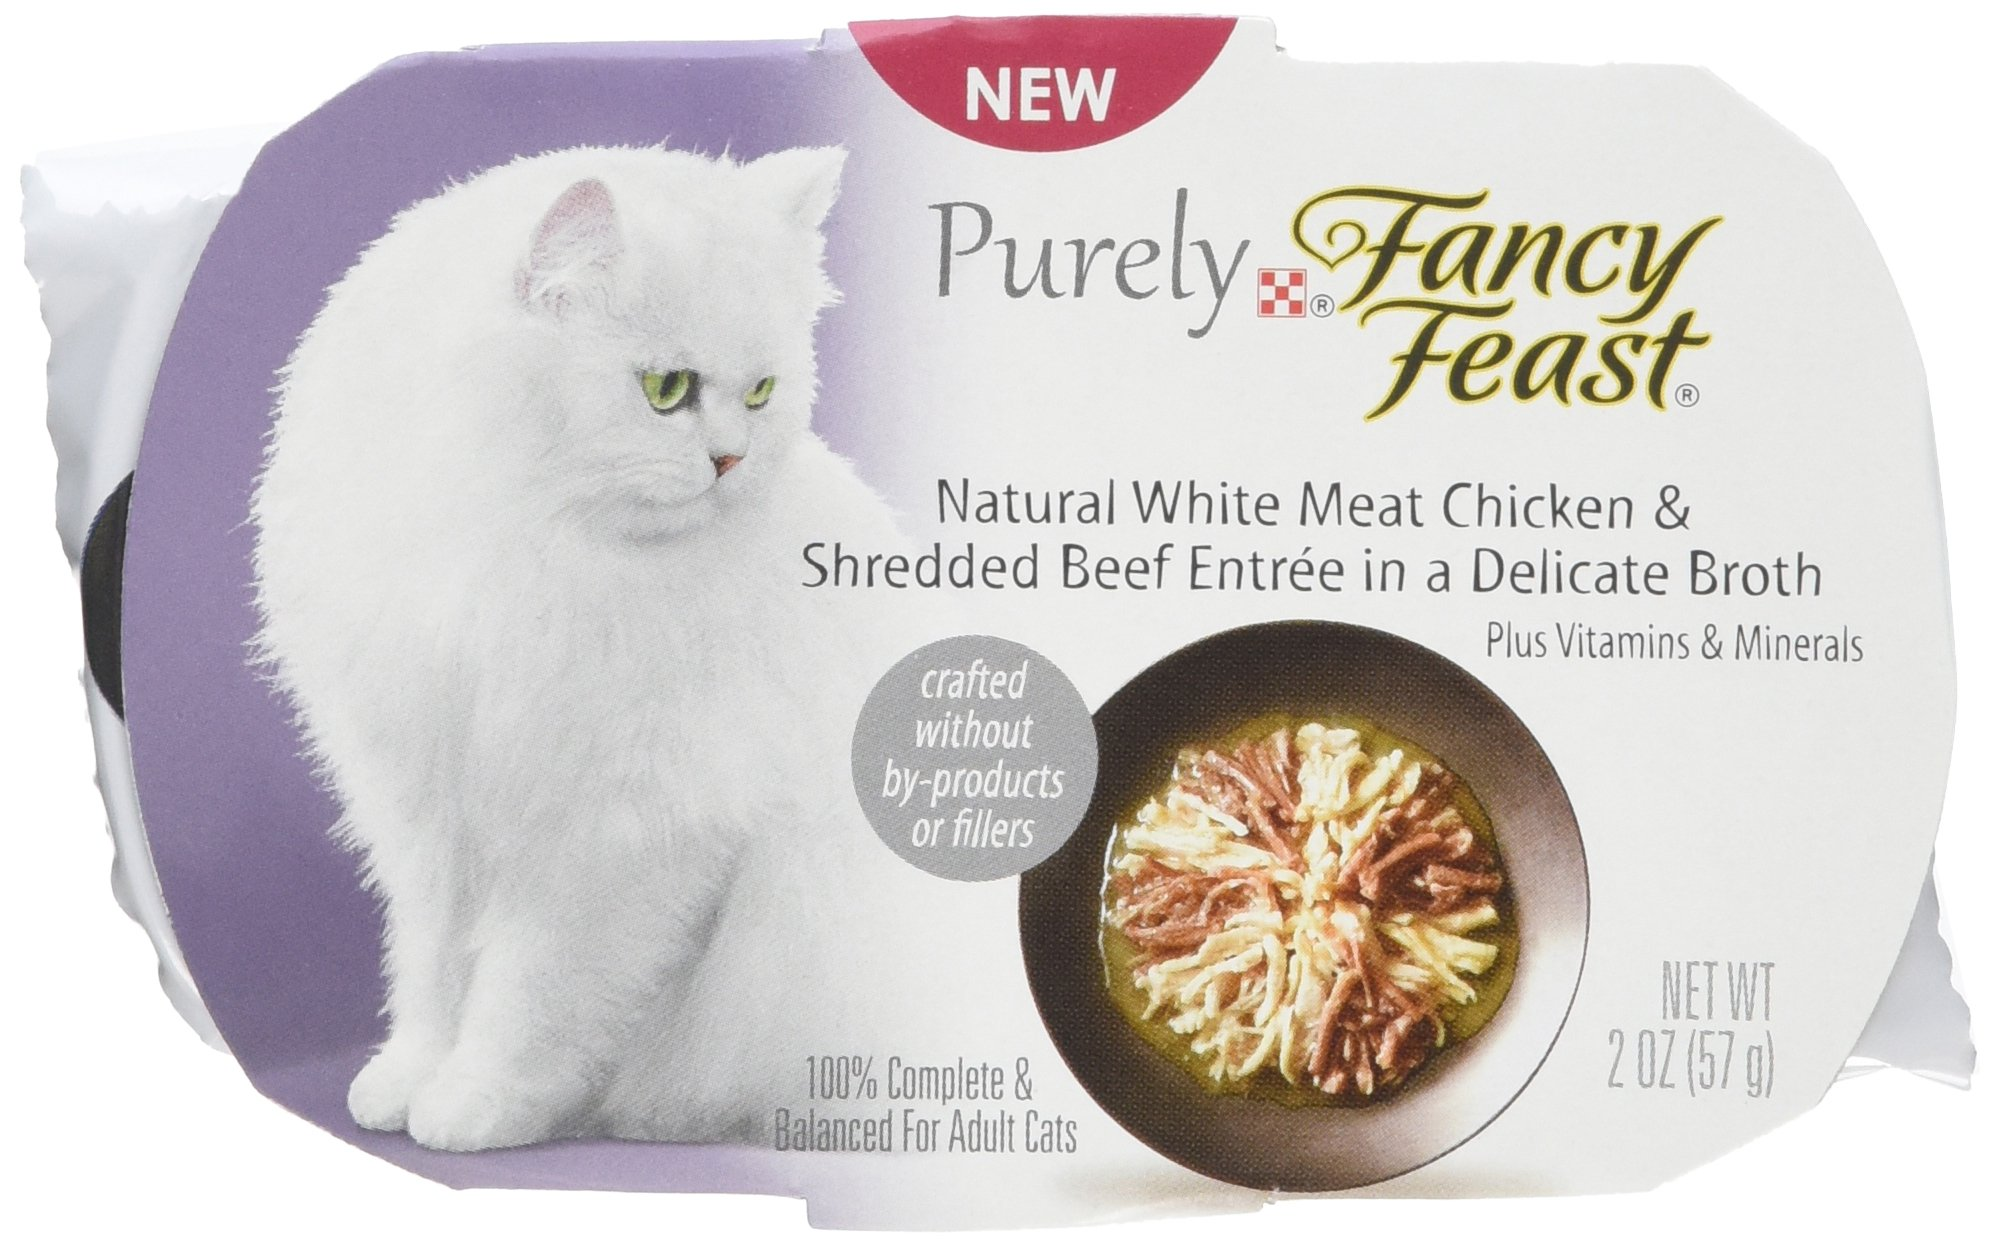 Purina Fancy Feast Fancy Feast Appetizers Natural White Meat Chicken and Shredded Beef Cat Food, 2-Ounce Pouch, Pack of 10